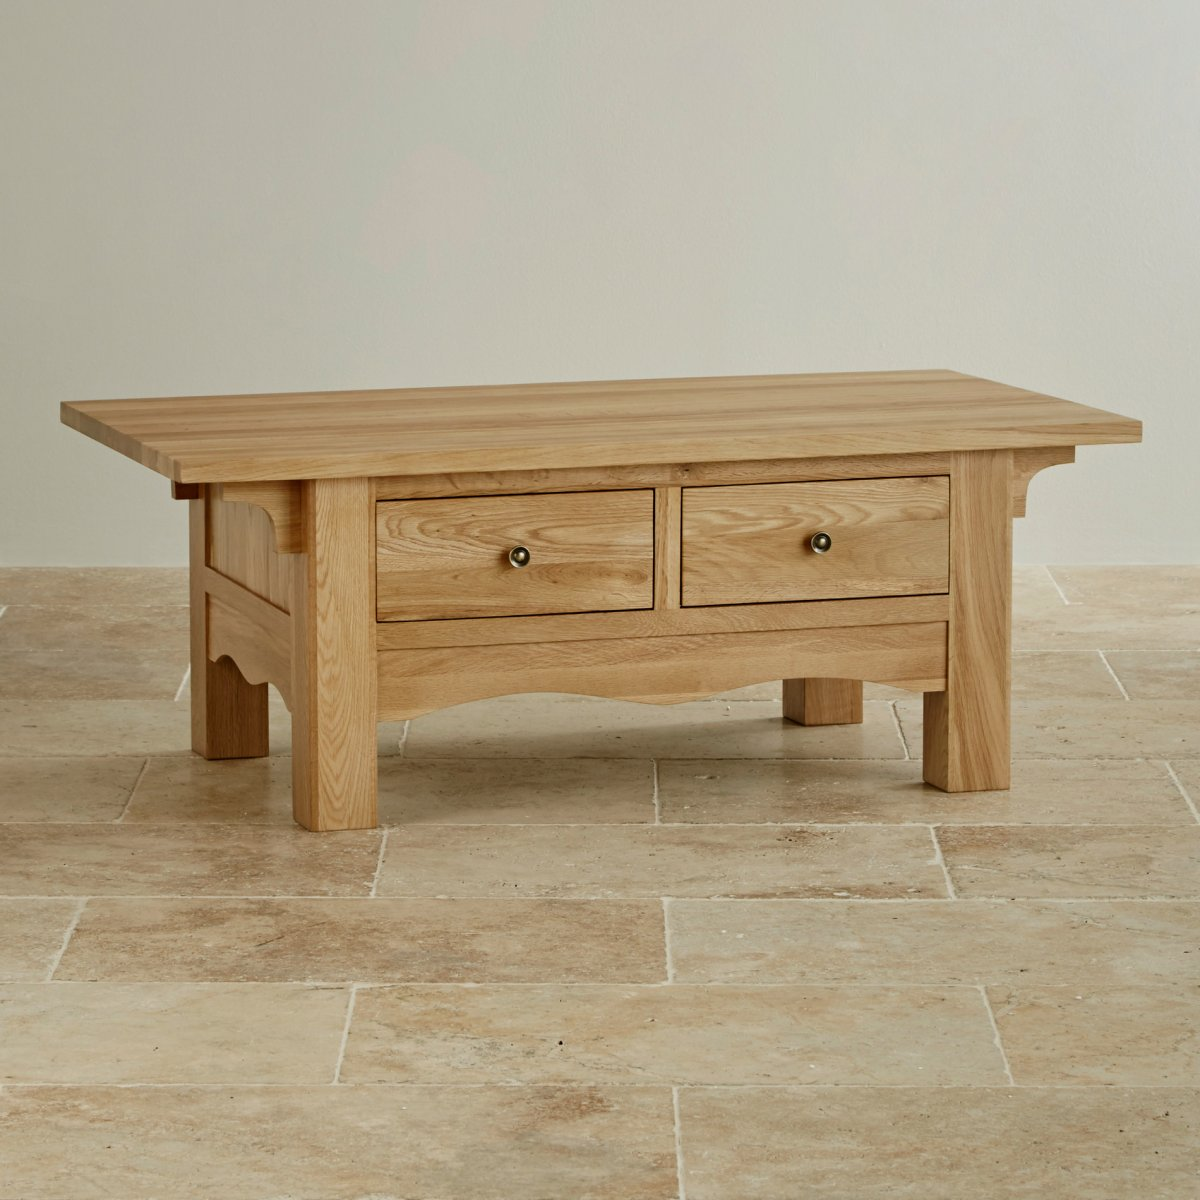 Cairo natural solid oak coffee table cairo natural solid oak 2 drawer coffee table geotapseo Image collections